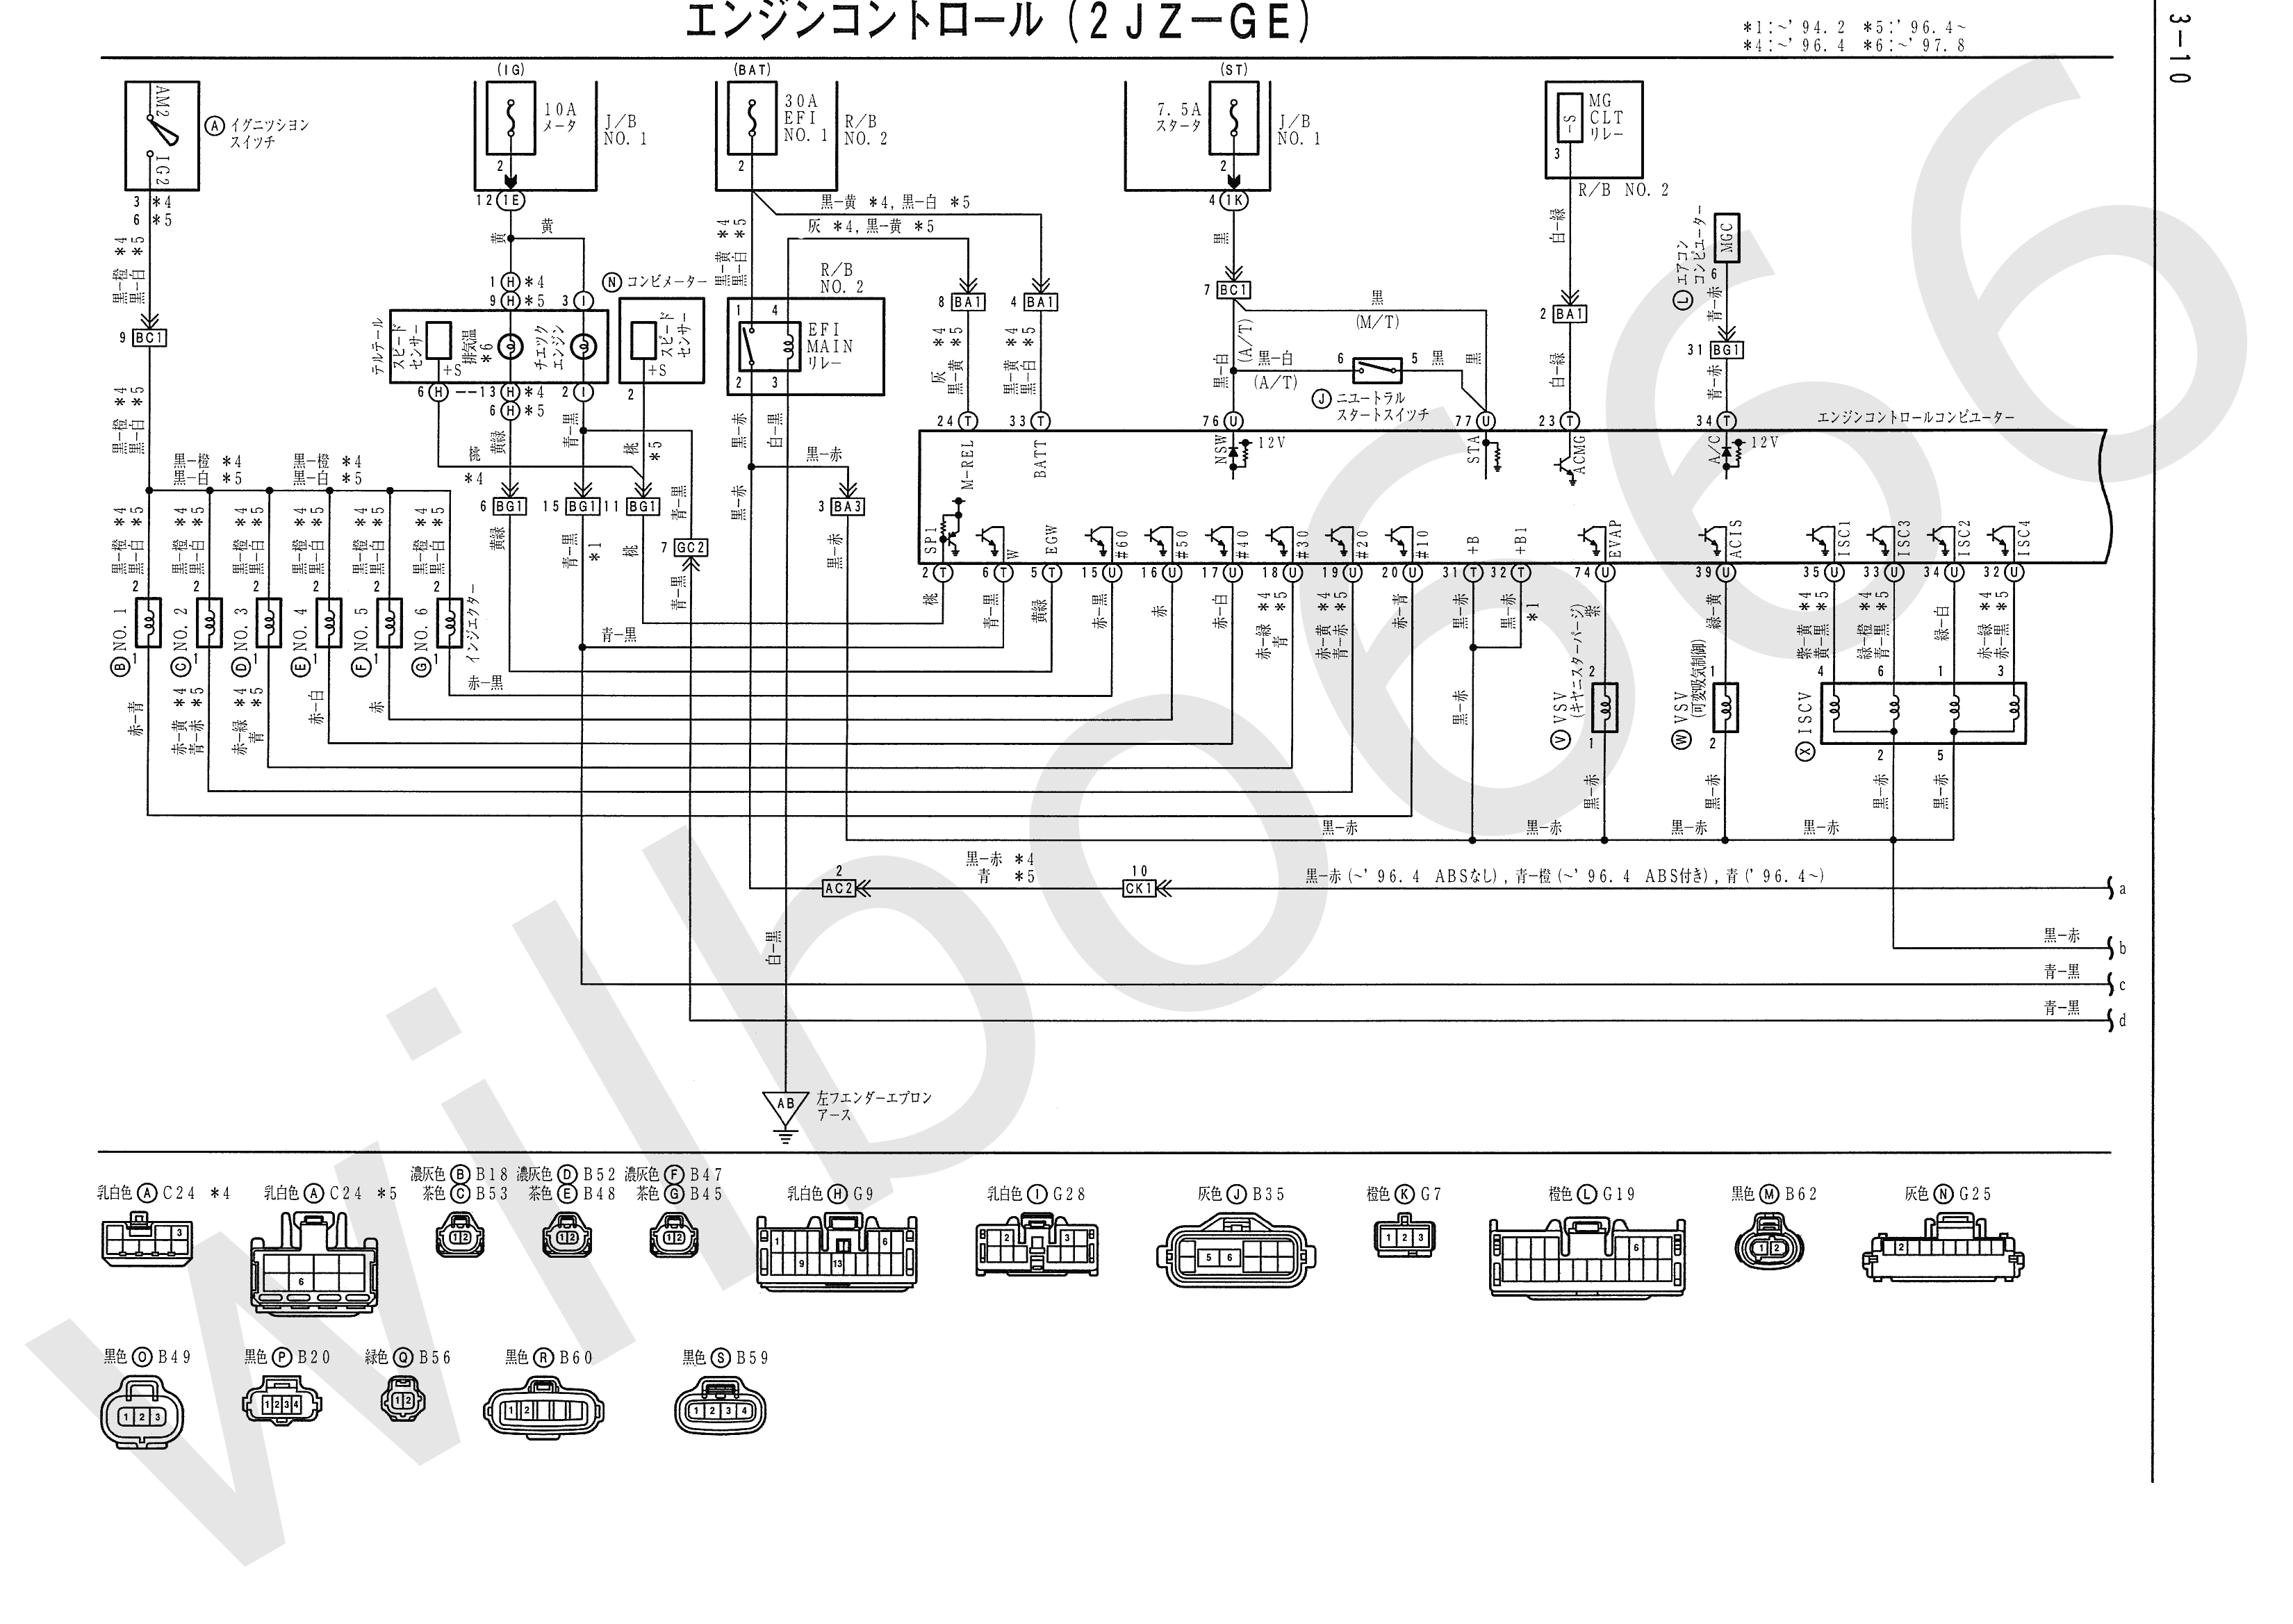 JZA80 Electrical Wiring Diagram 6742505 3 10 wilbo666 2jz ge jza80 supra engine wiring wiring diagram book at n-0.co